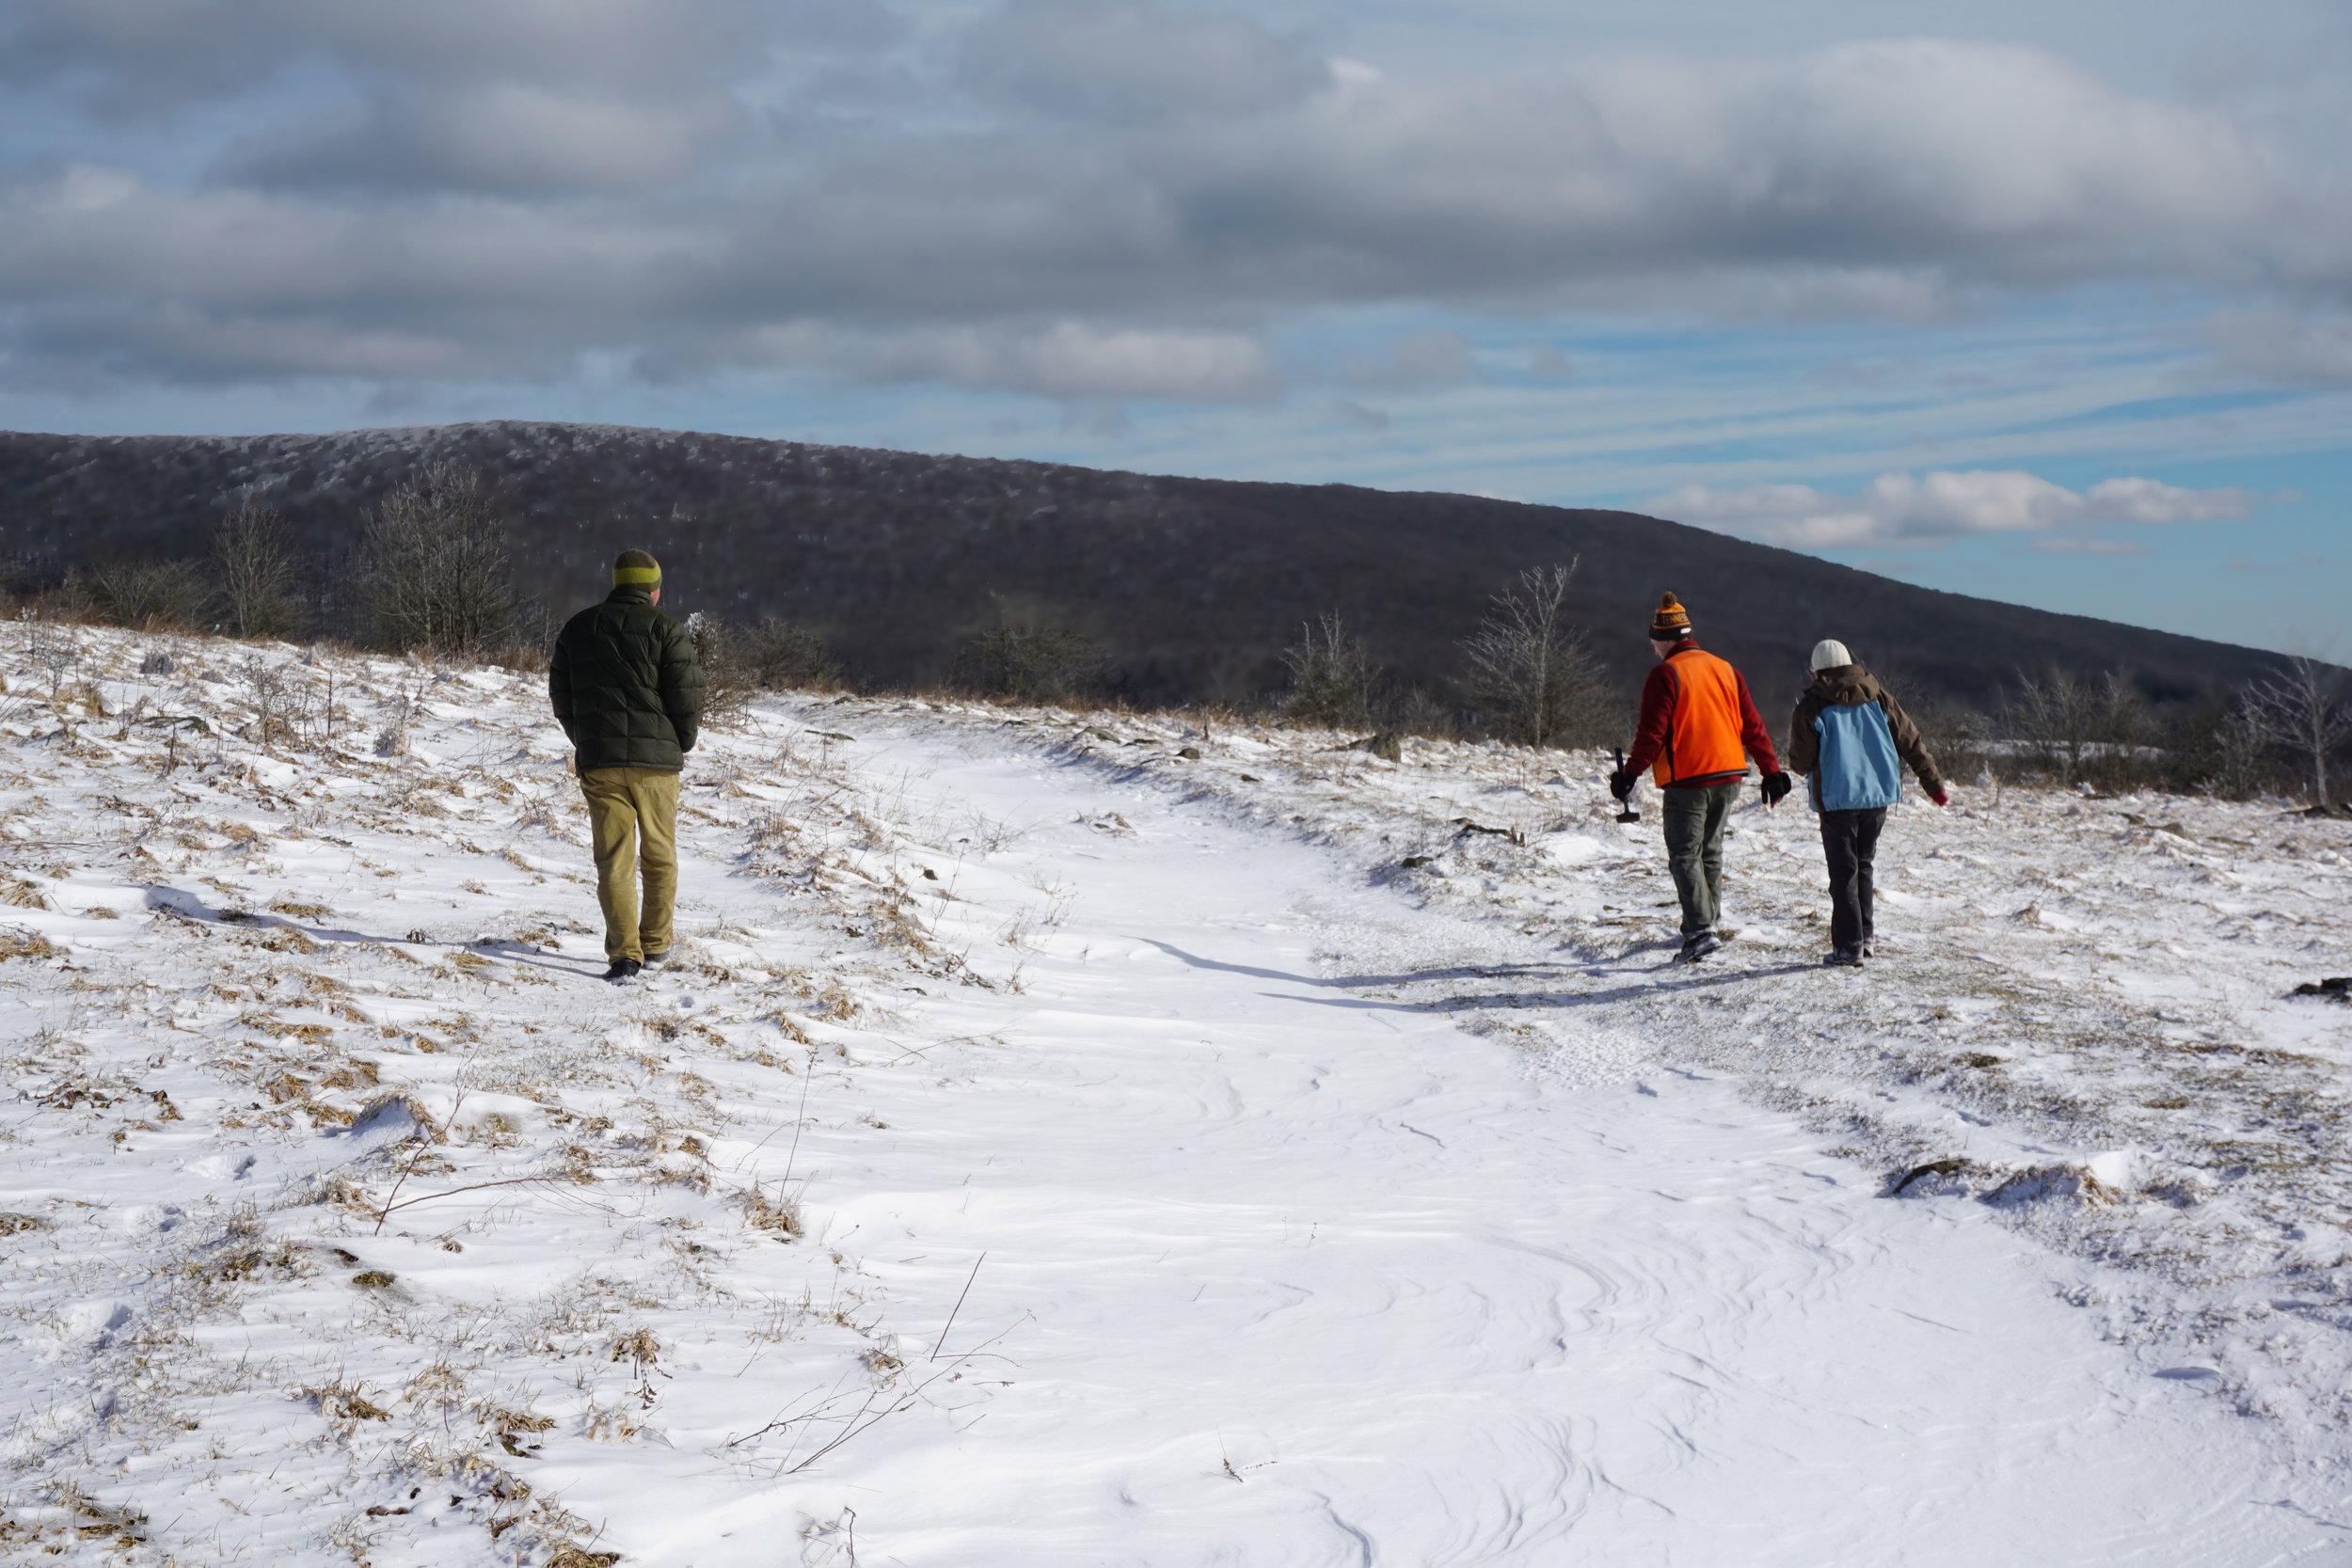 The Appalachian Trail under a blanket of drifted snow.